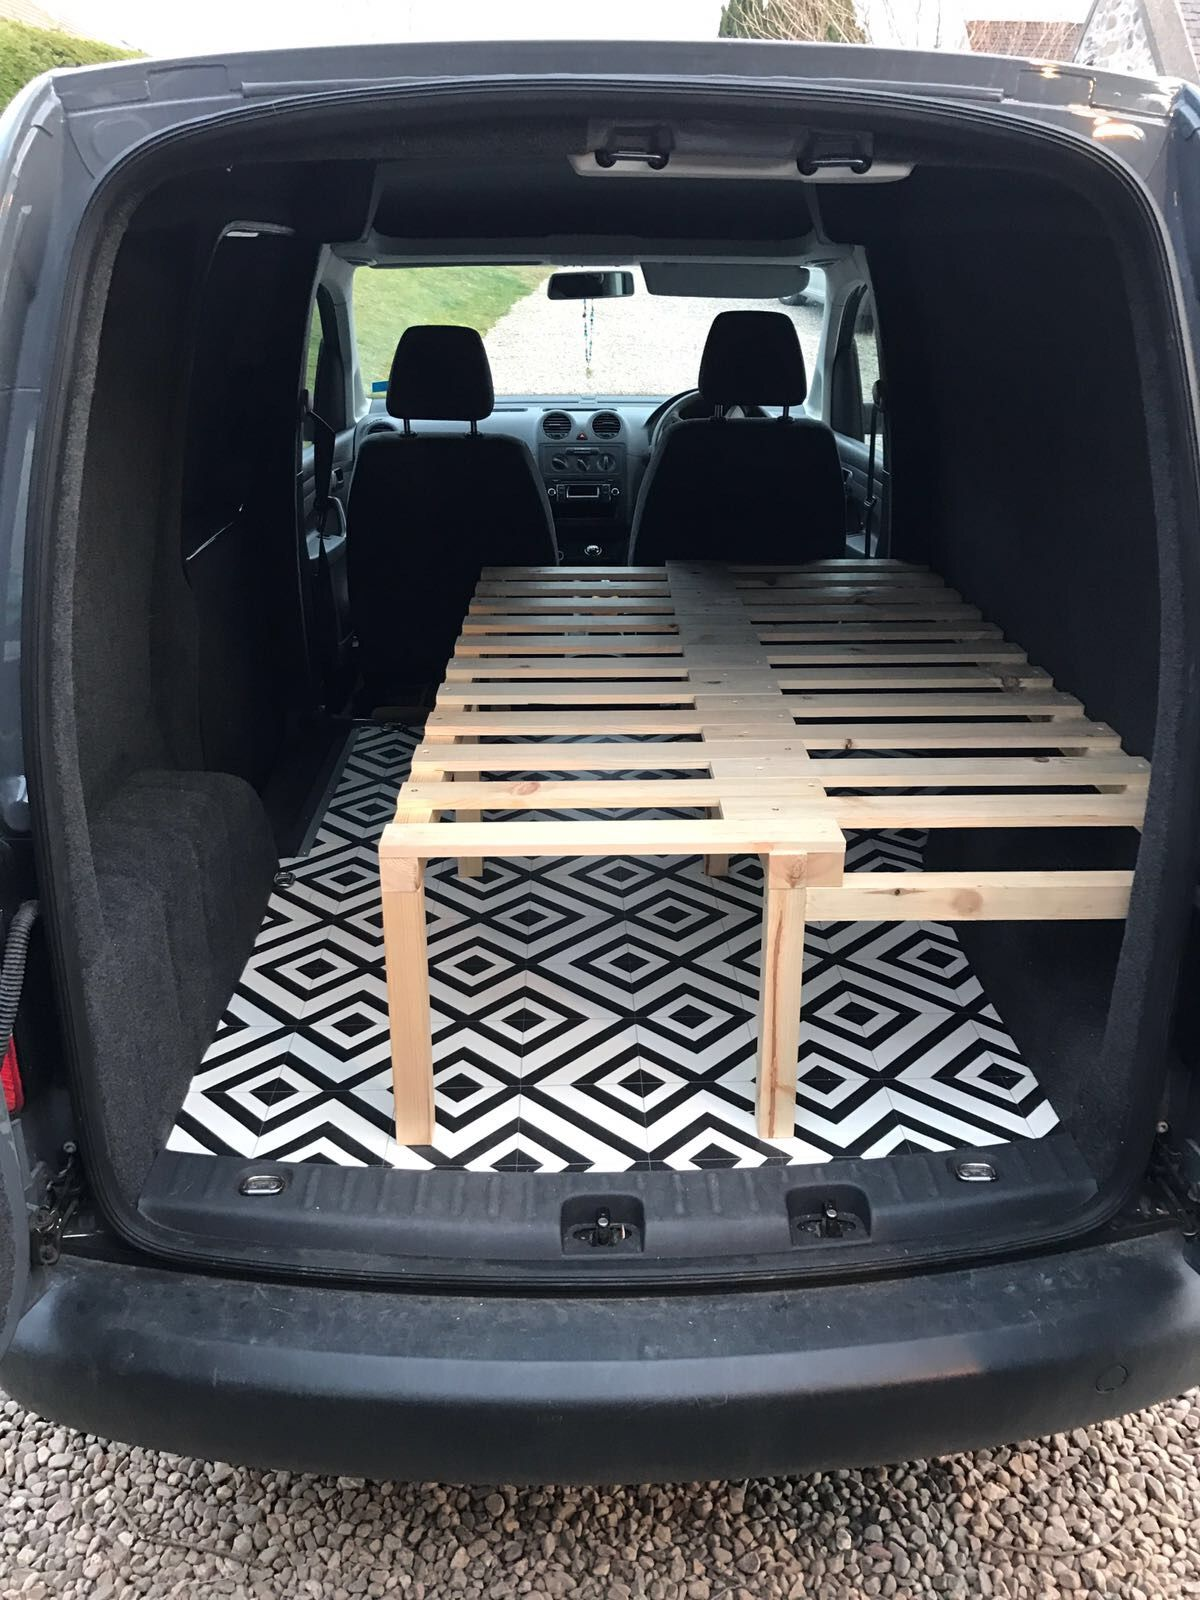 Ausziehbett Ben Vw Caddy With Sliding Slat Bed Bench So Chuffed With It Camping